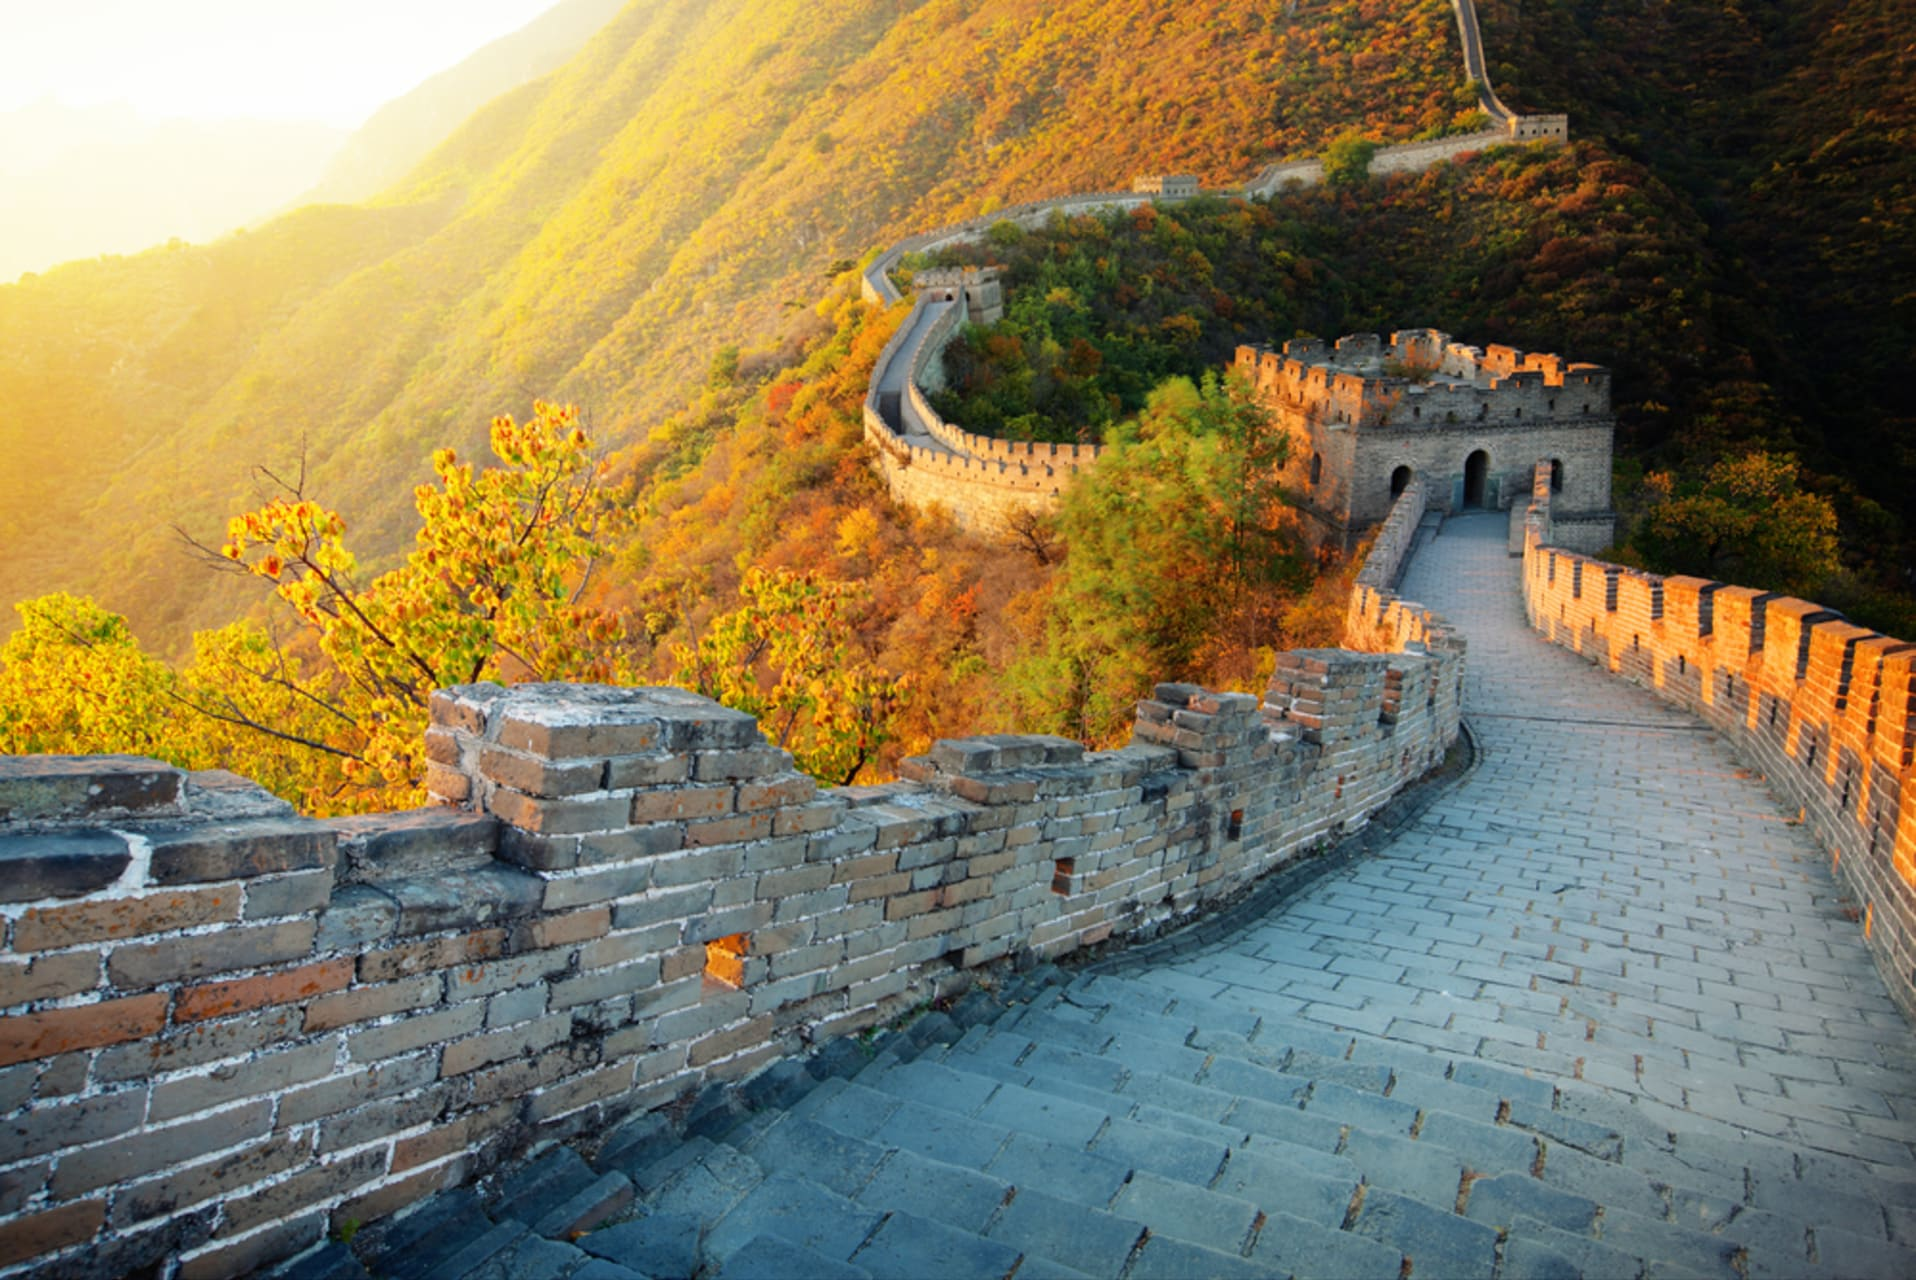 Beijing - Mutianyu China Great Wall: Part 1 (The Western part with Cable Car)